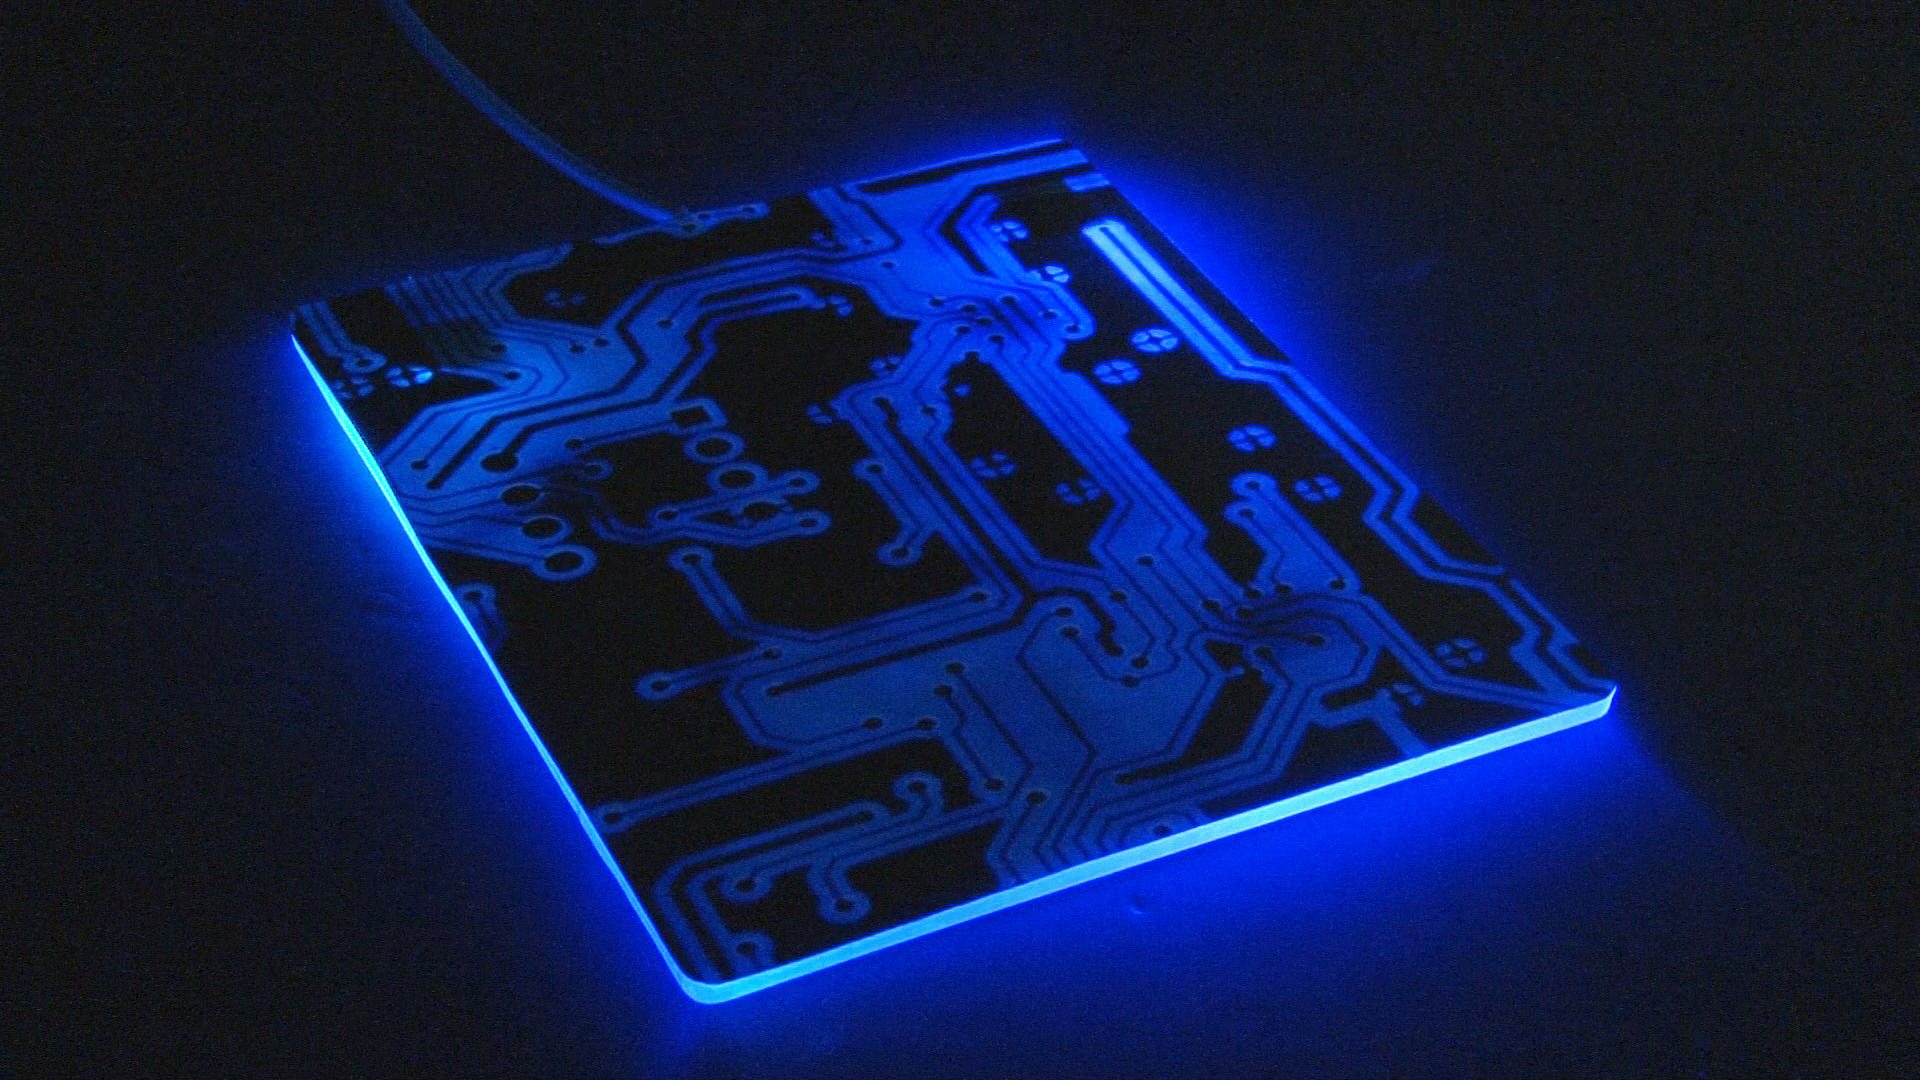 Razer Introduces The Firefly Gaming Mousepad With